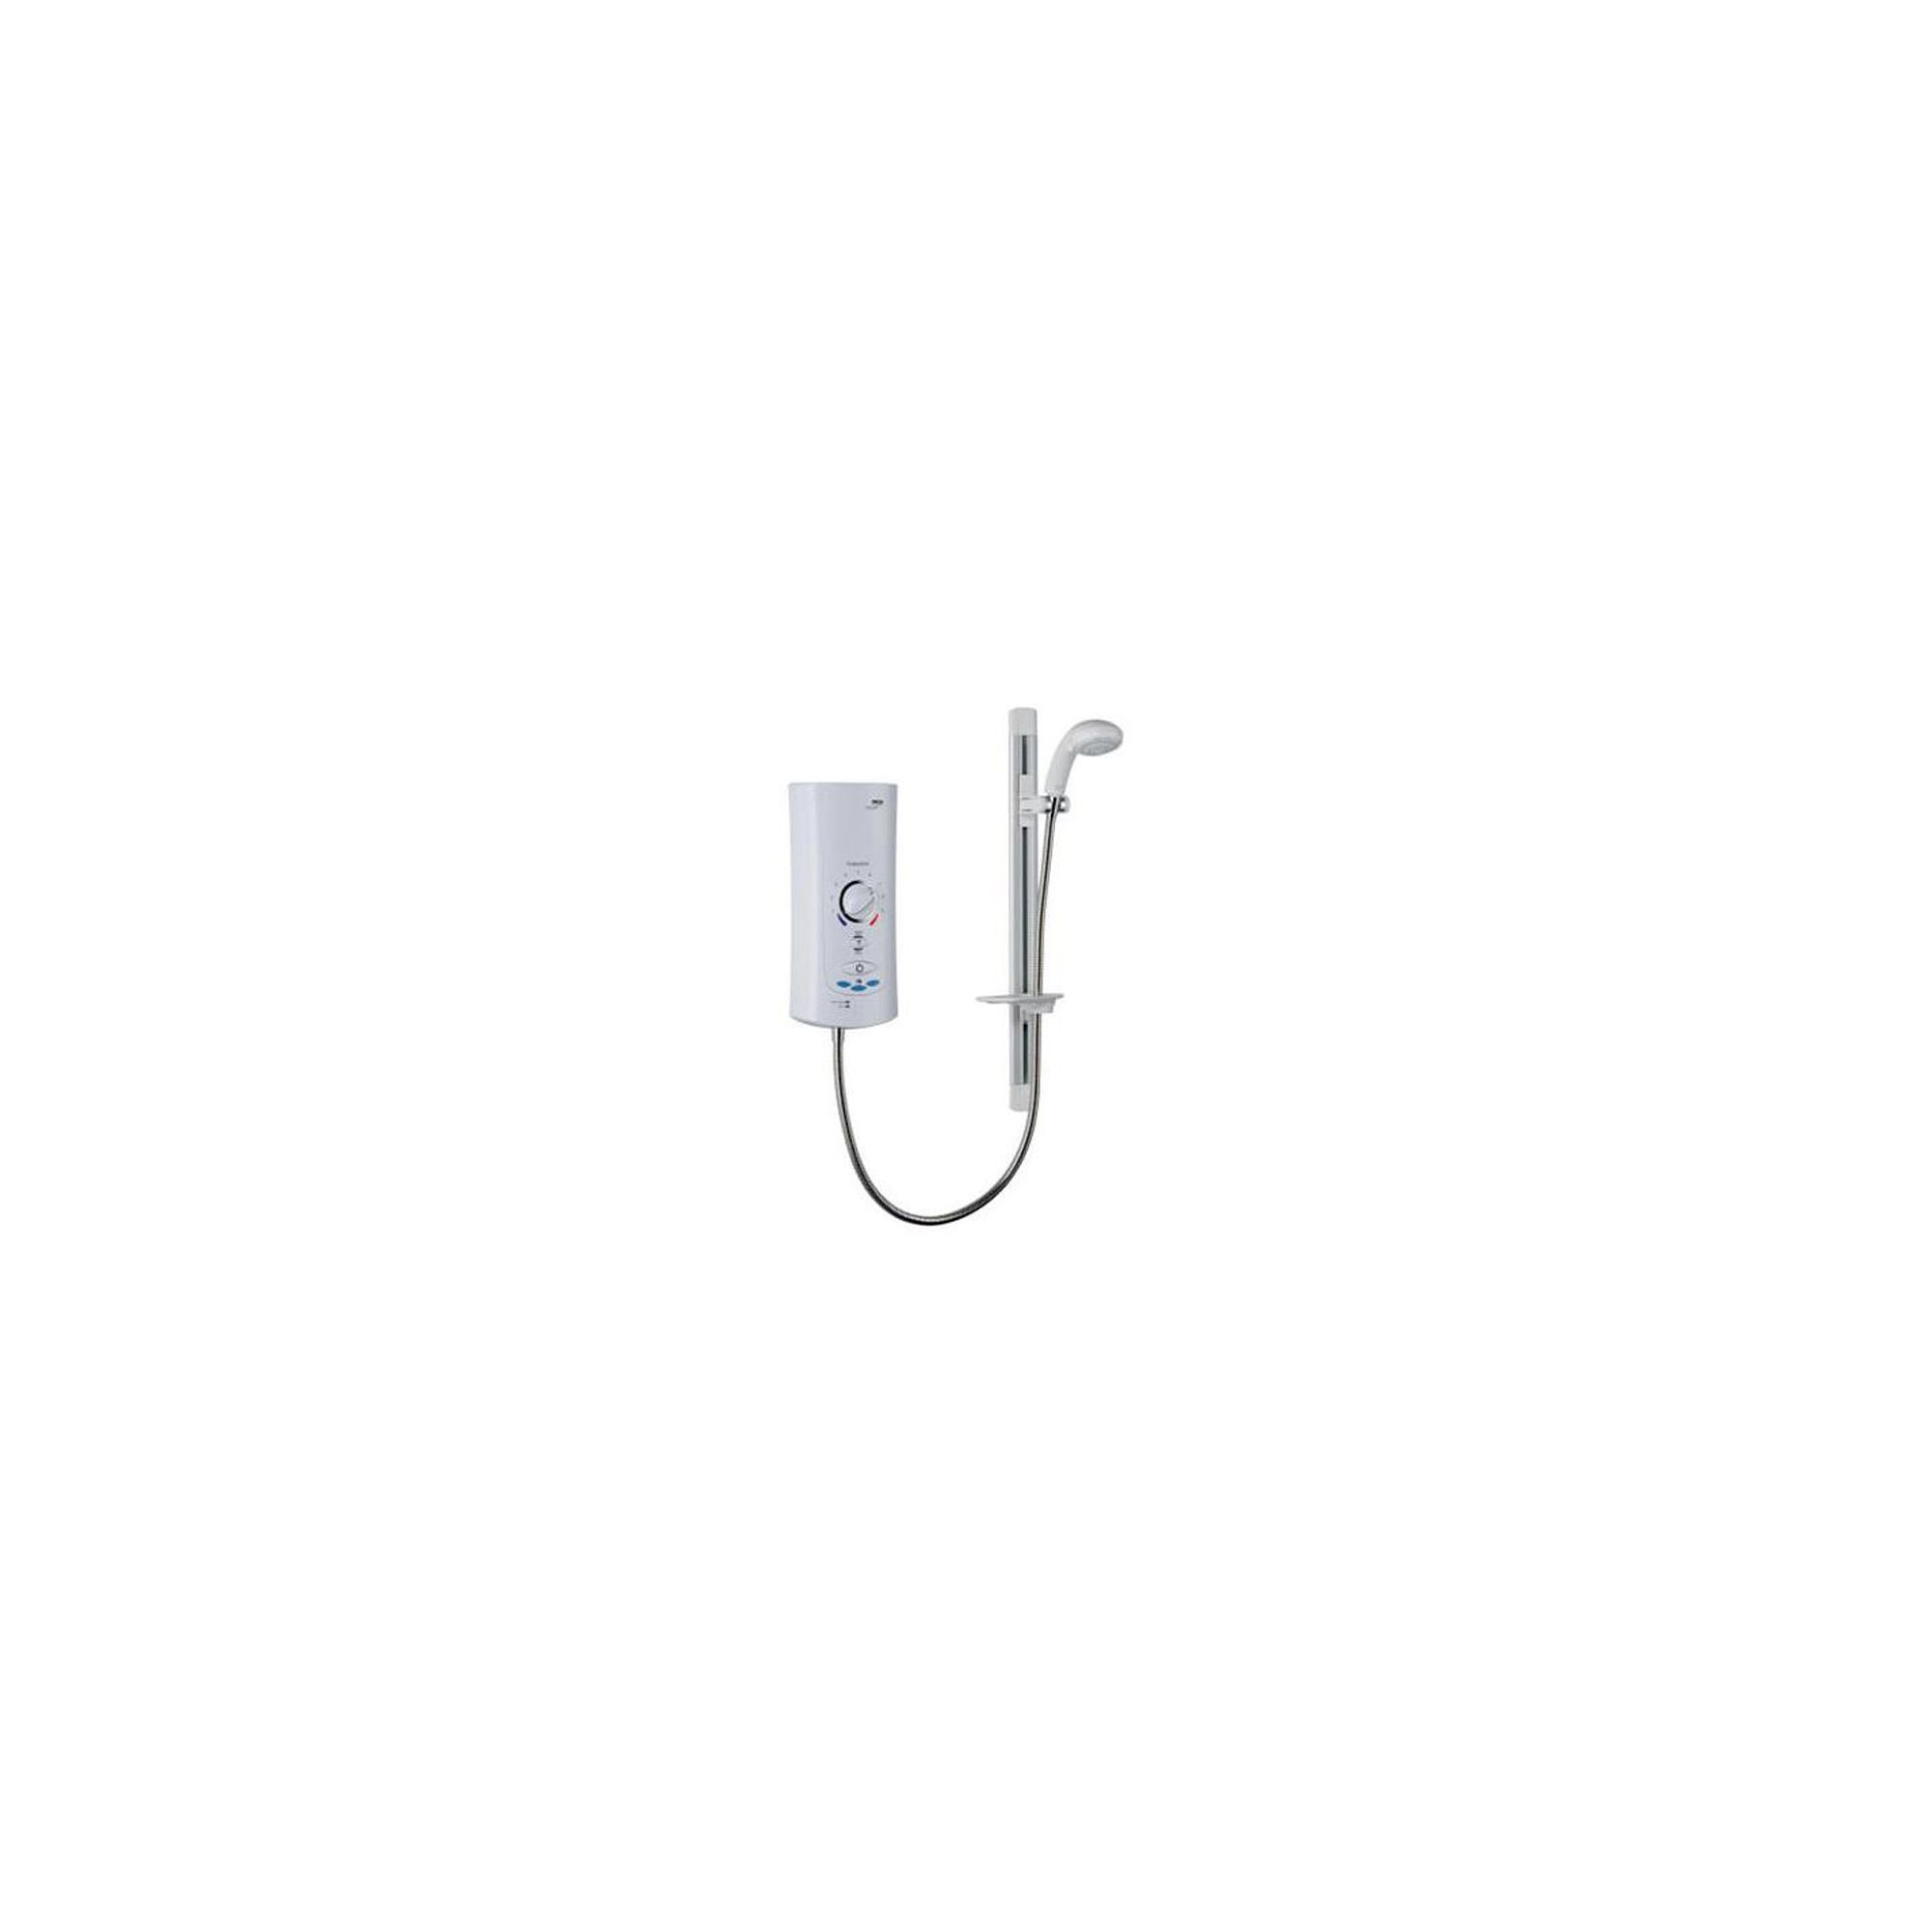 Mira Advance ATL Memory 9.8 kW Electric Shower, Handset, White/Chrome at Tescos Direct